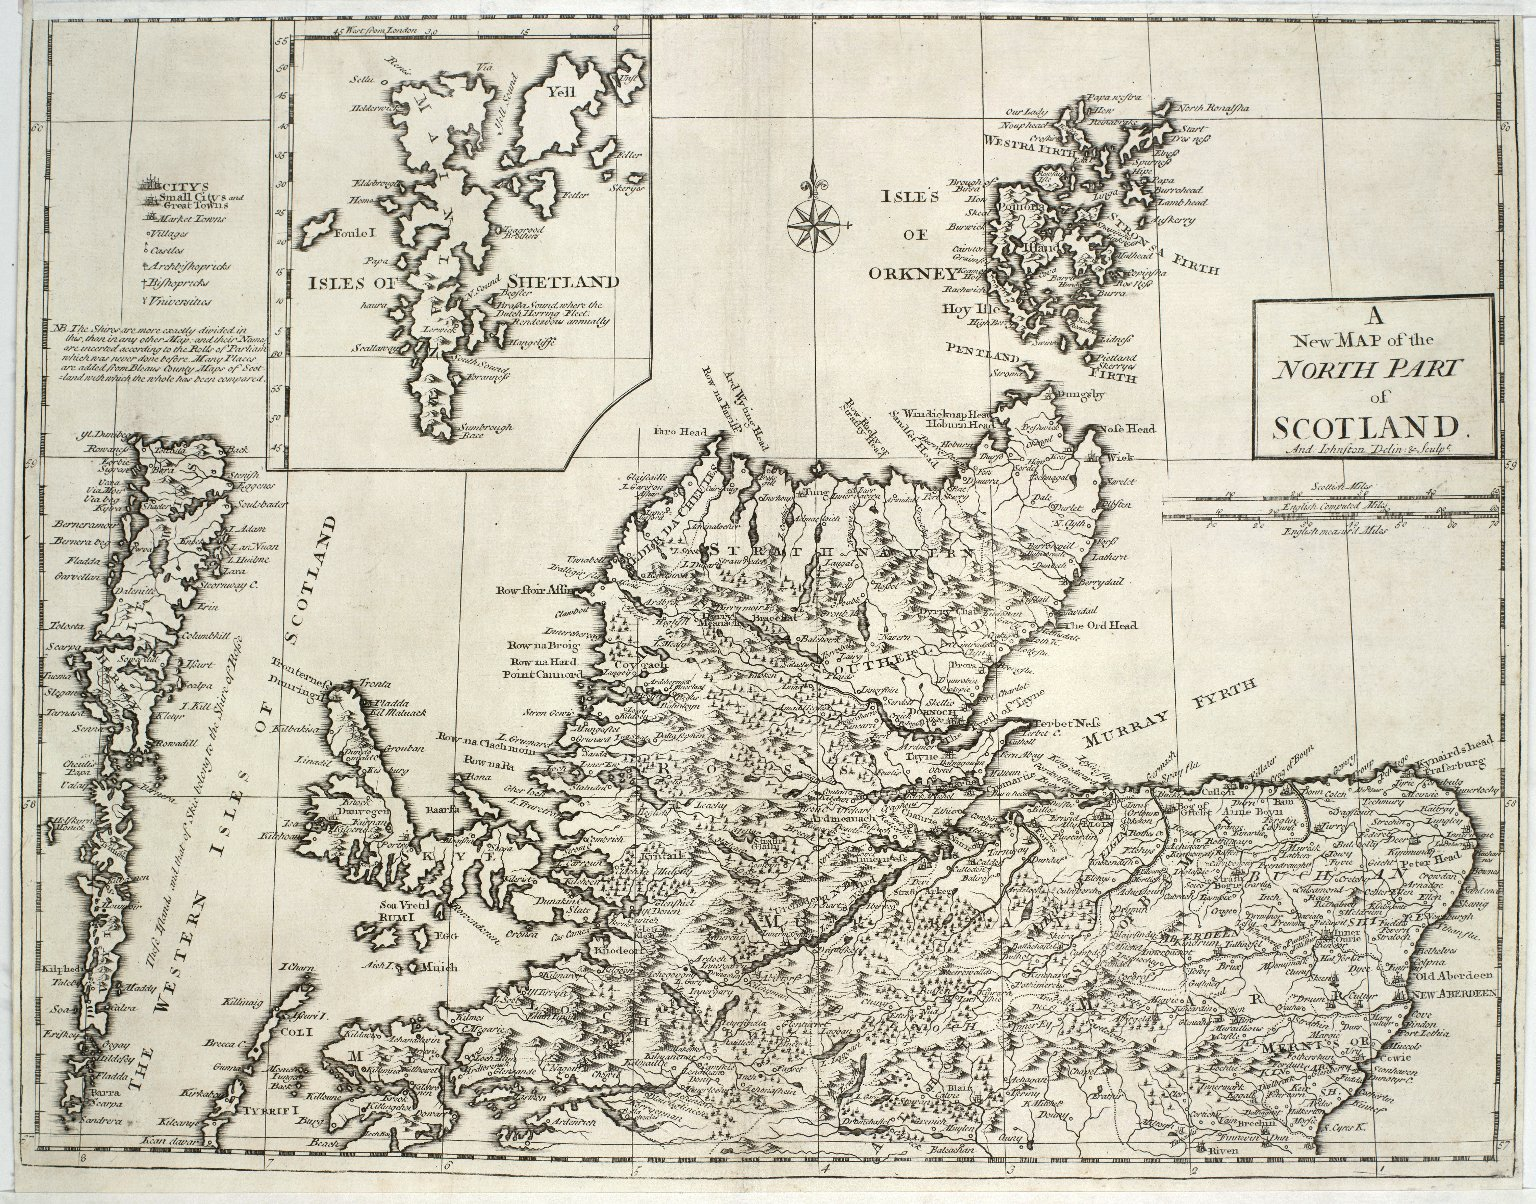 A New Map of the North Part of Scotland. [1 of 1]